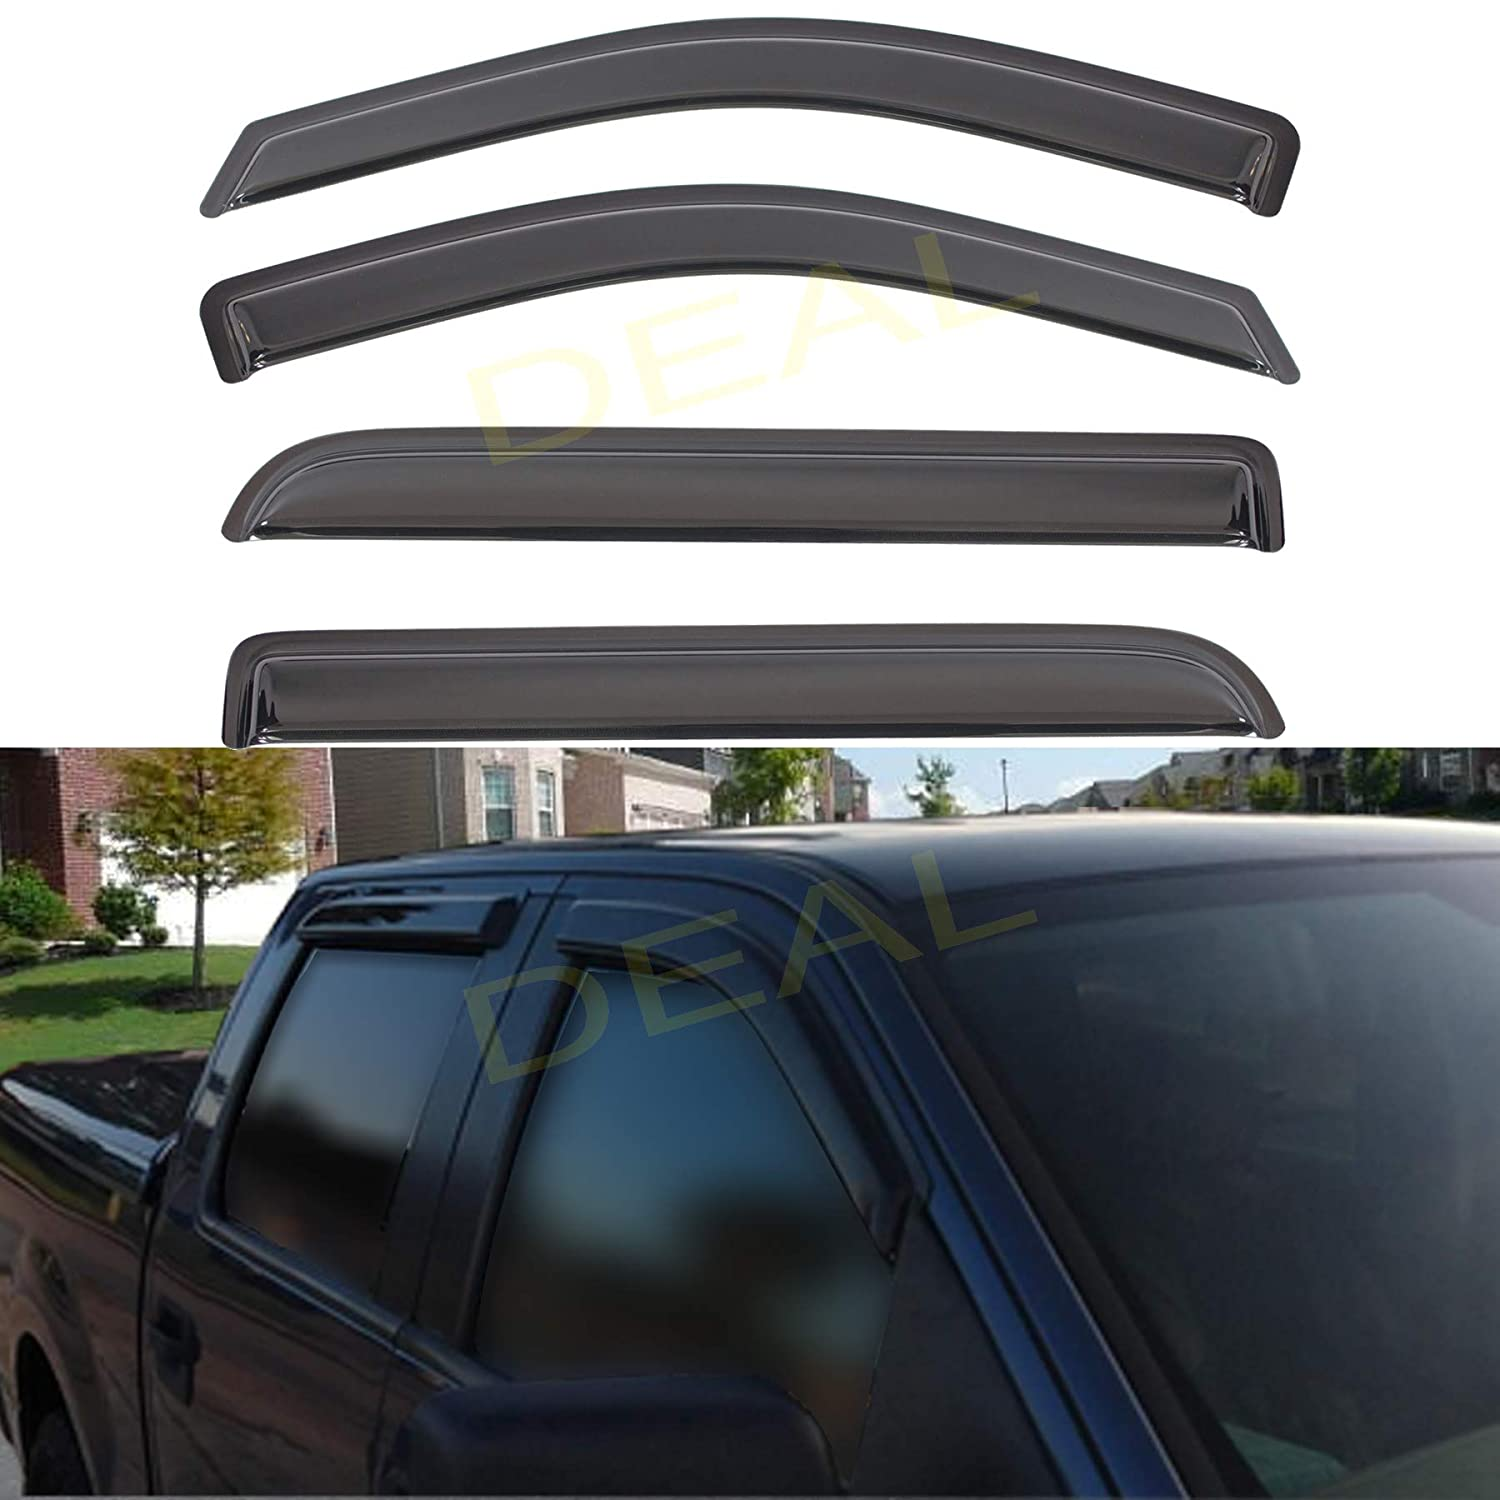 Custom Fit For 2004-2008 Ford F150 Super Crew Cab With 4 Full Size Doors Only DEAL 4-Piece Set Smoke Vent Window Visor Side Window Deflector With Outside Mount Tape-On Type